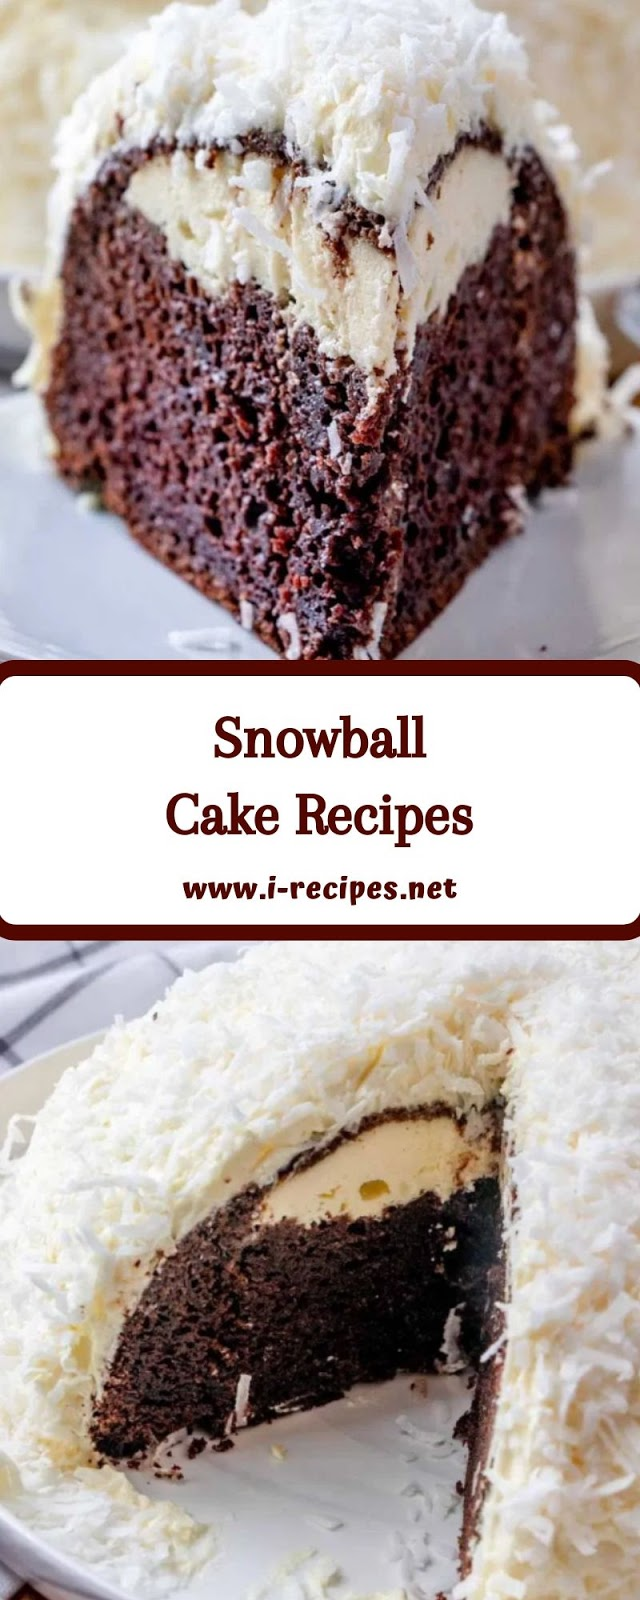 Snowball Cake Recipes